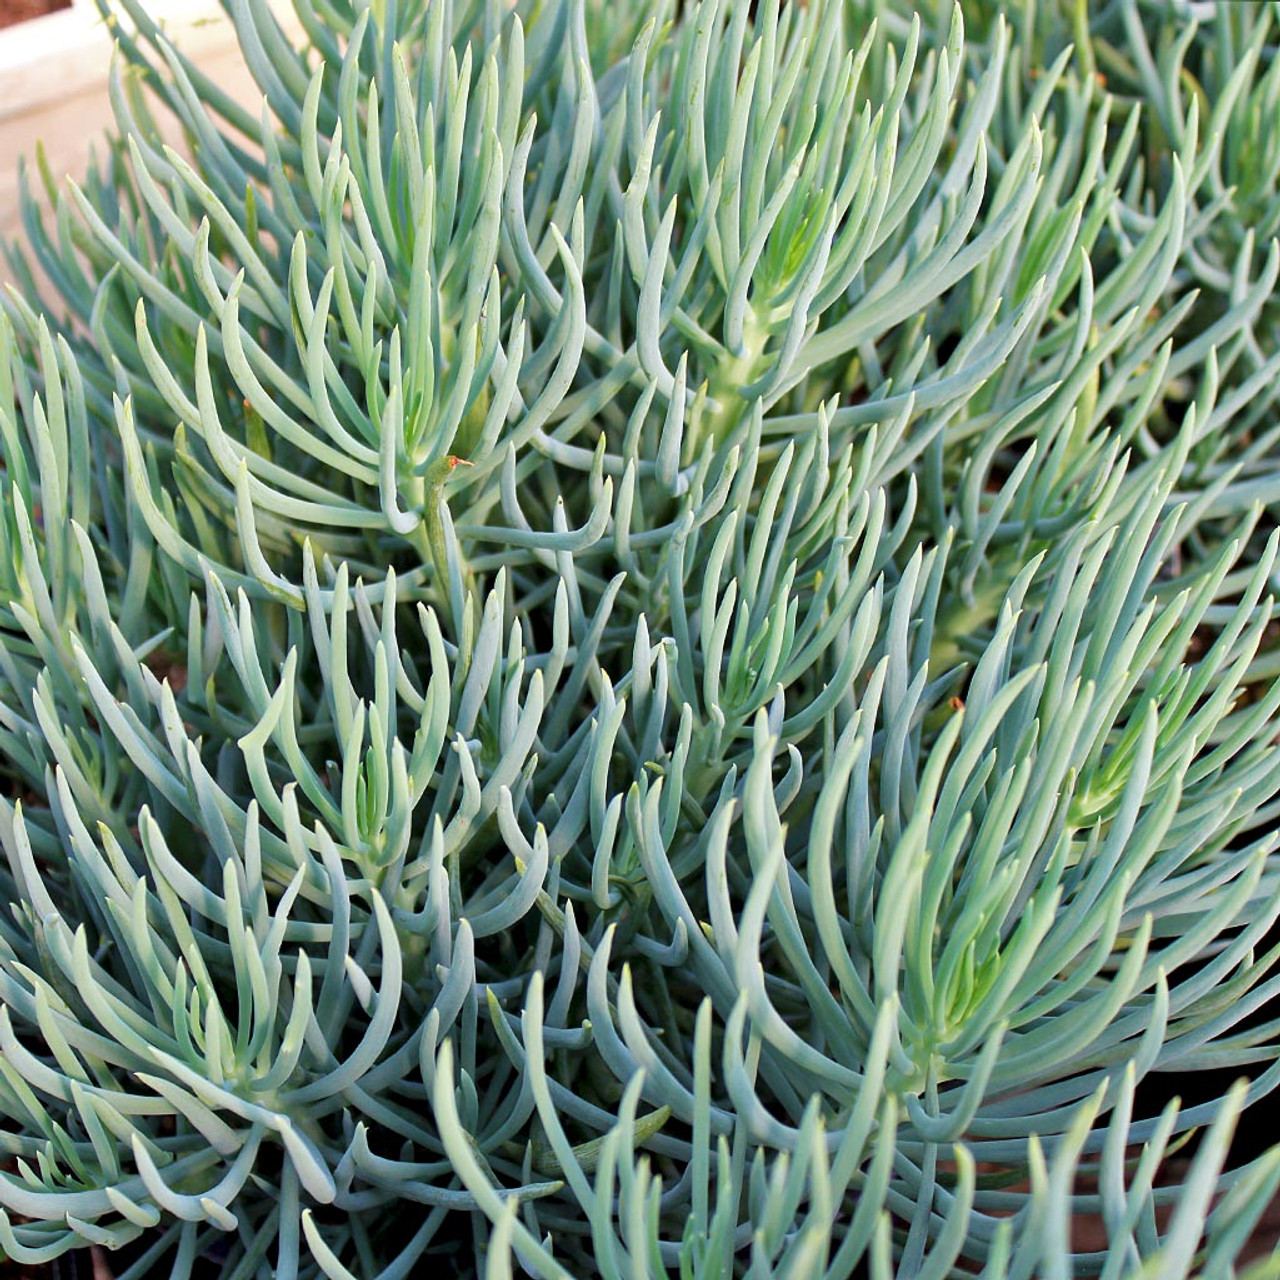 Blue chalk sticks plant - Senecio Vitalis Serpents Blue Chalk Fingers